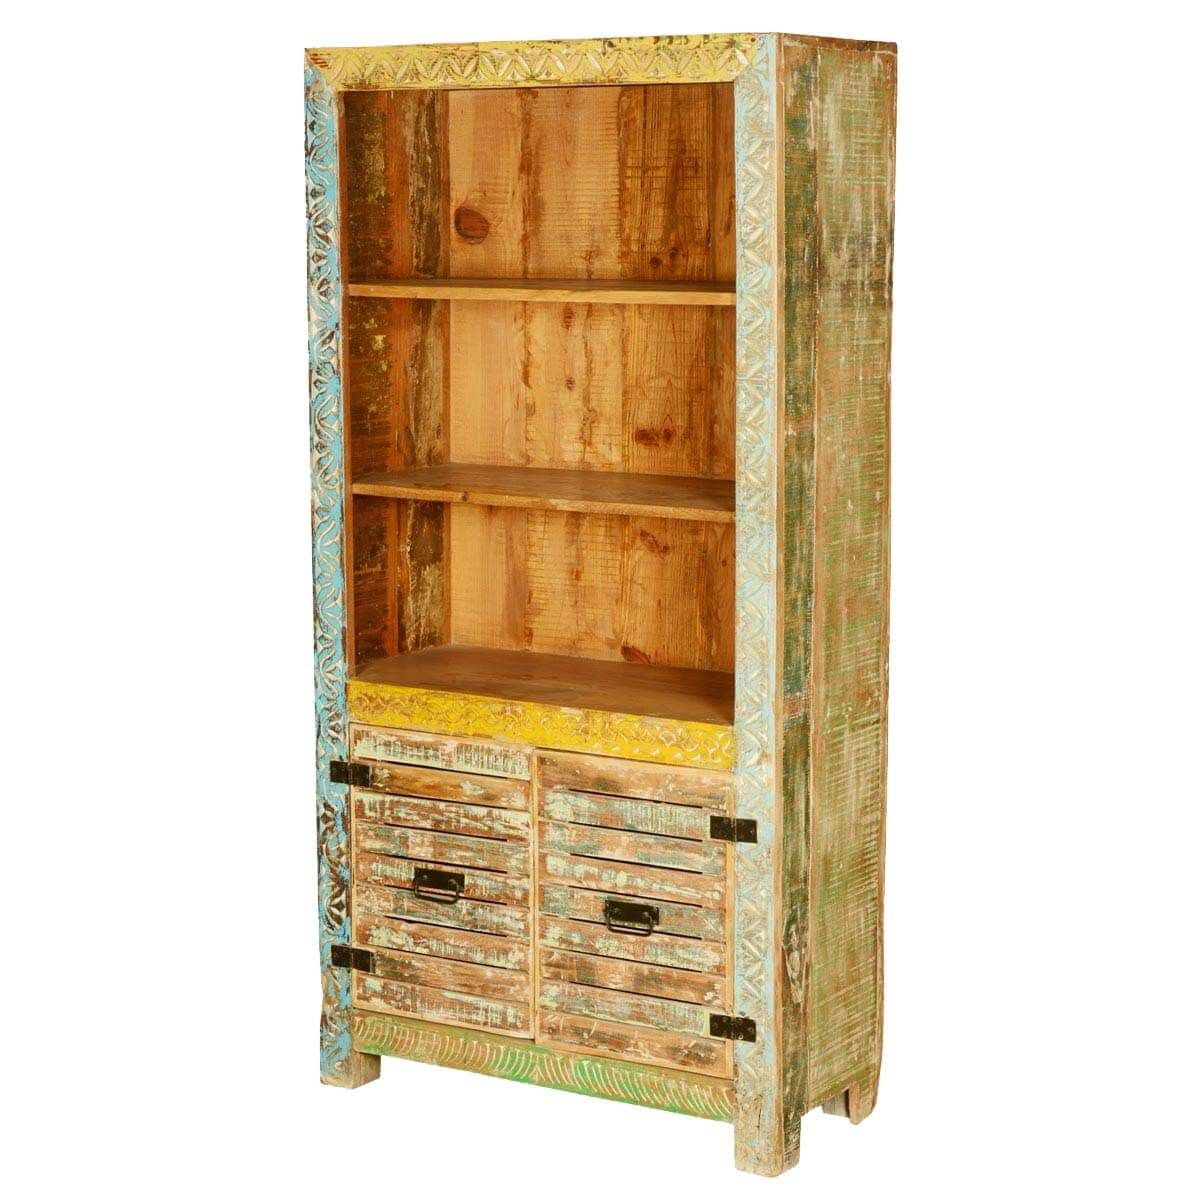 Castalia rustic reclaimed wood locker doors open display for Wood lockers with doors